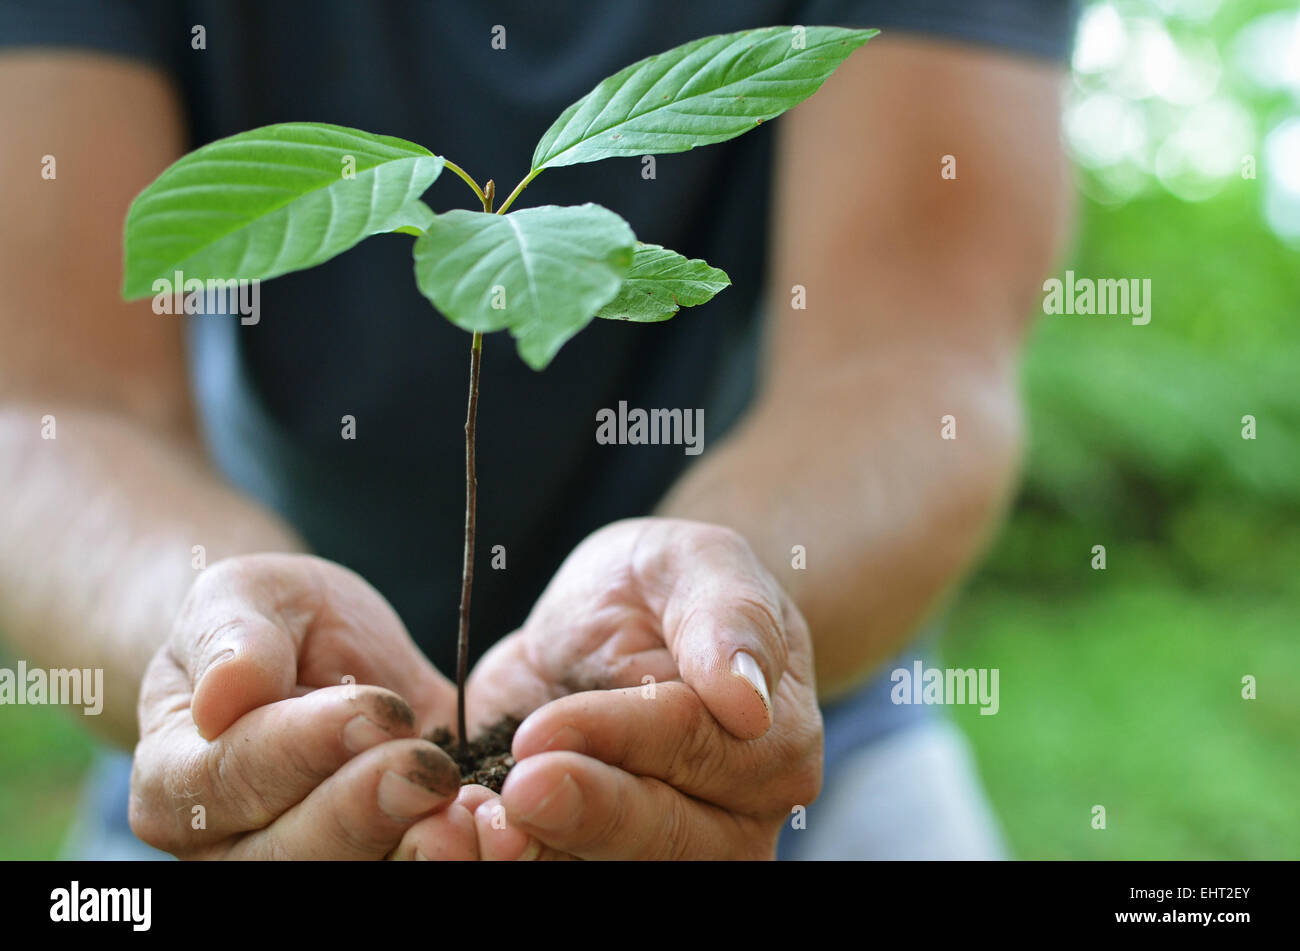 Safe Nature - Stock Image